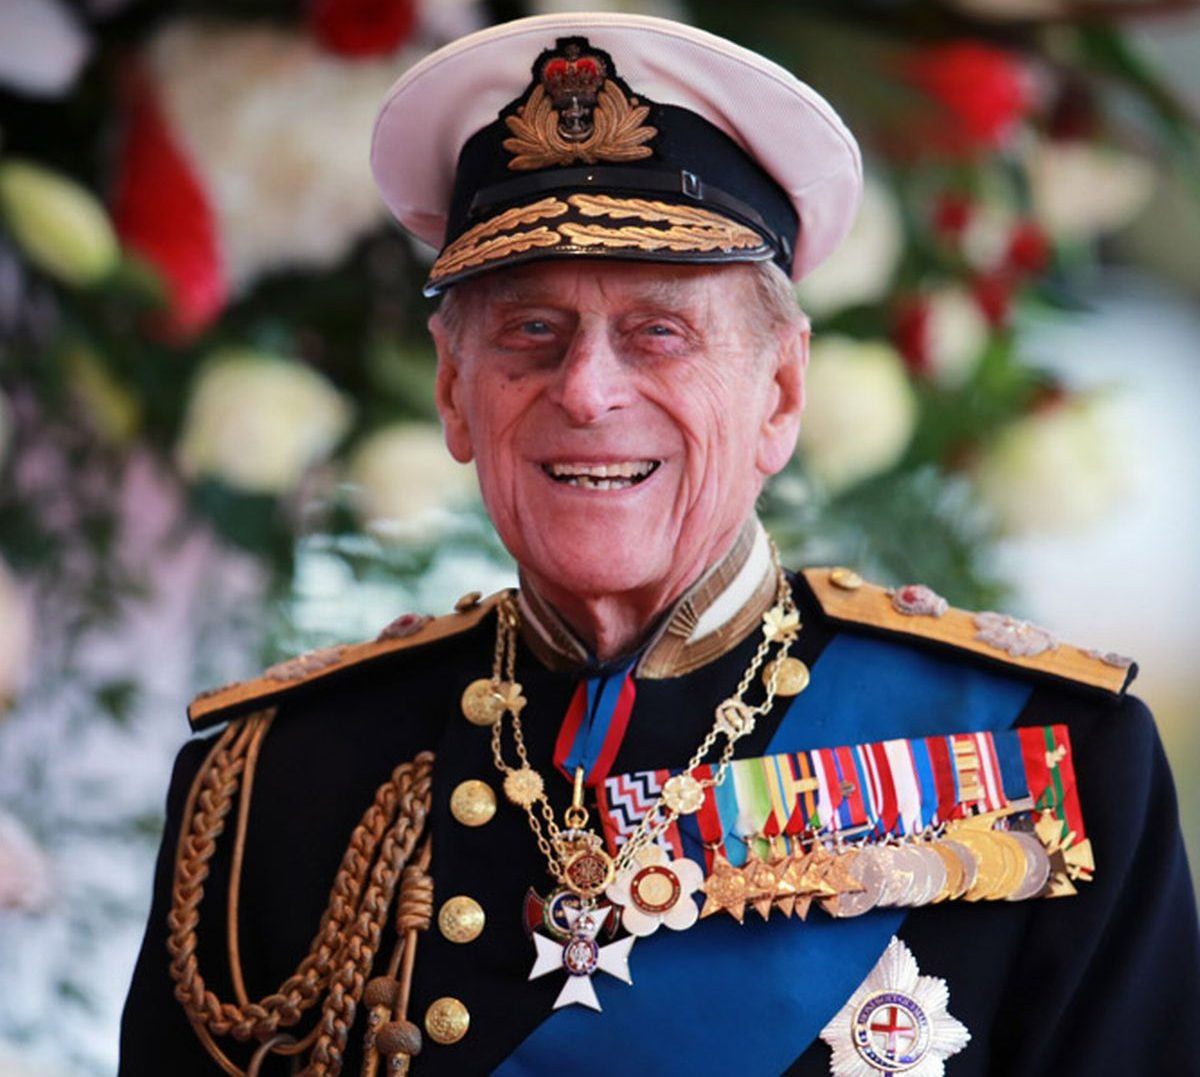 10 Things To Know About Prince Philip, The Late Duke of Edinburgh